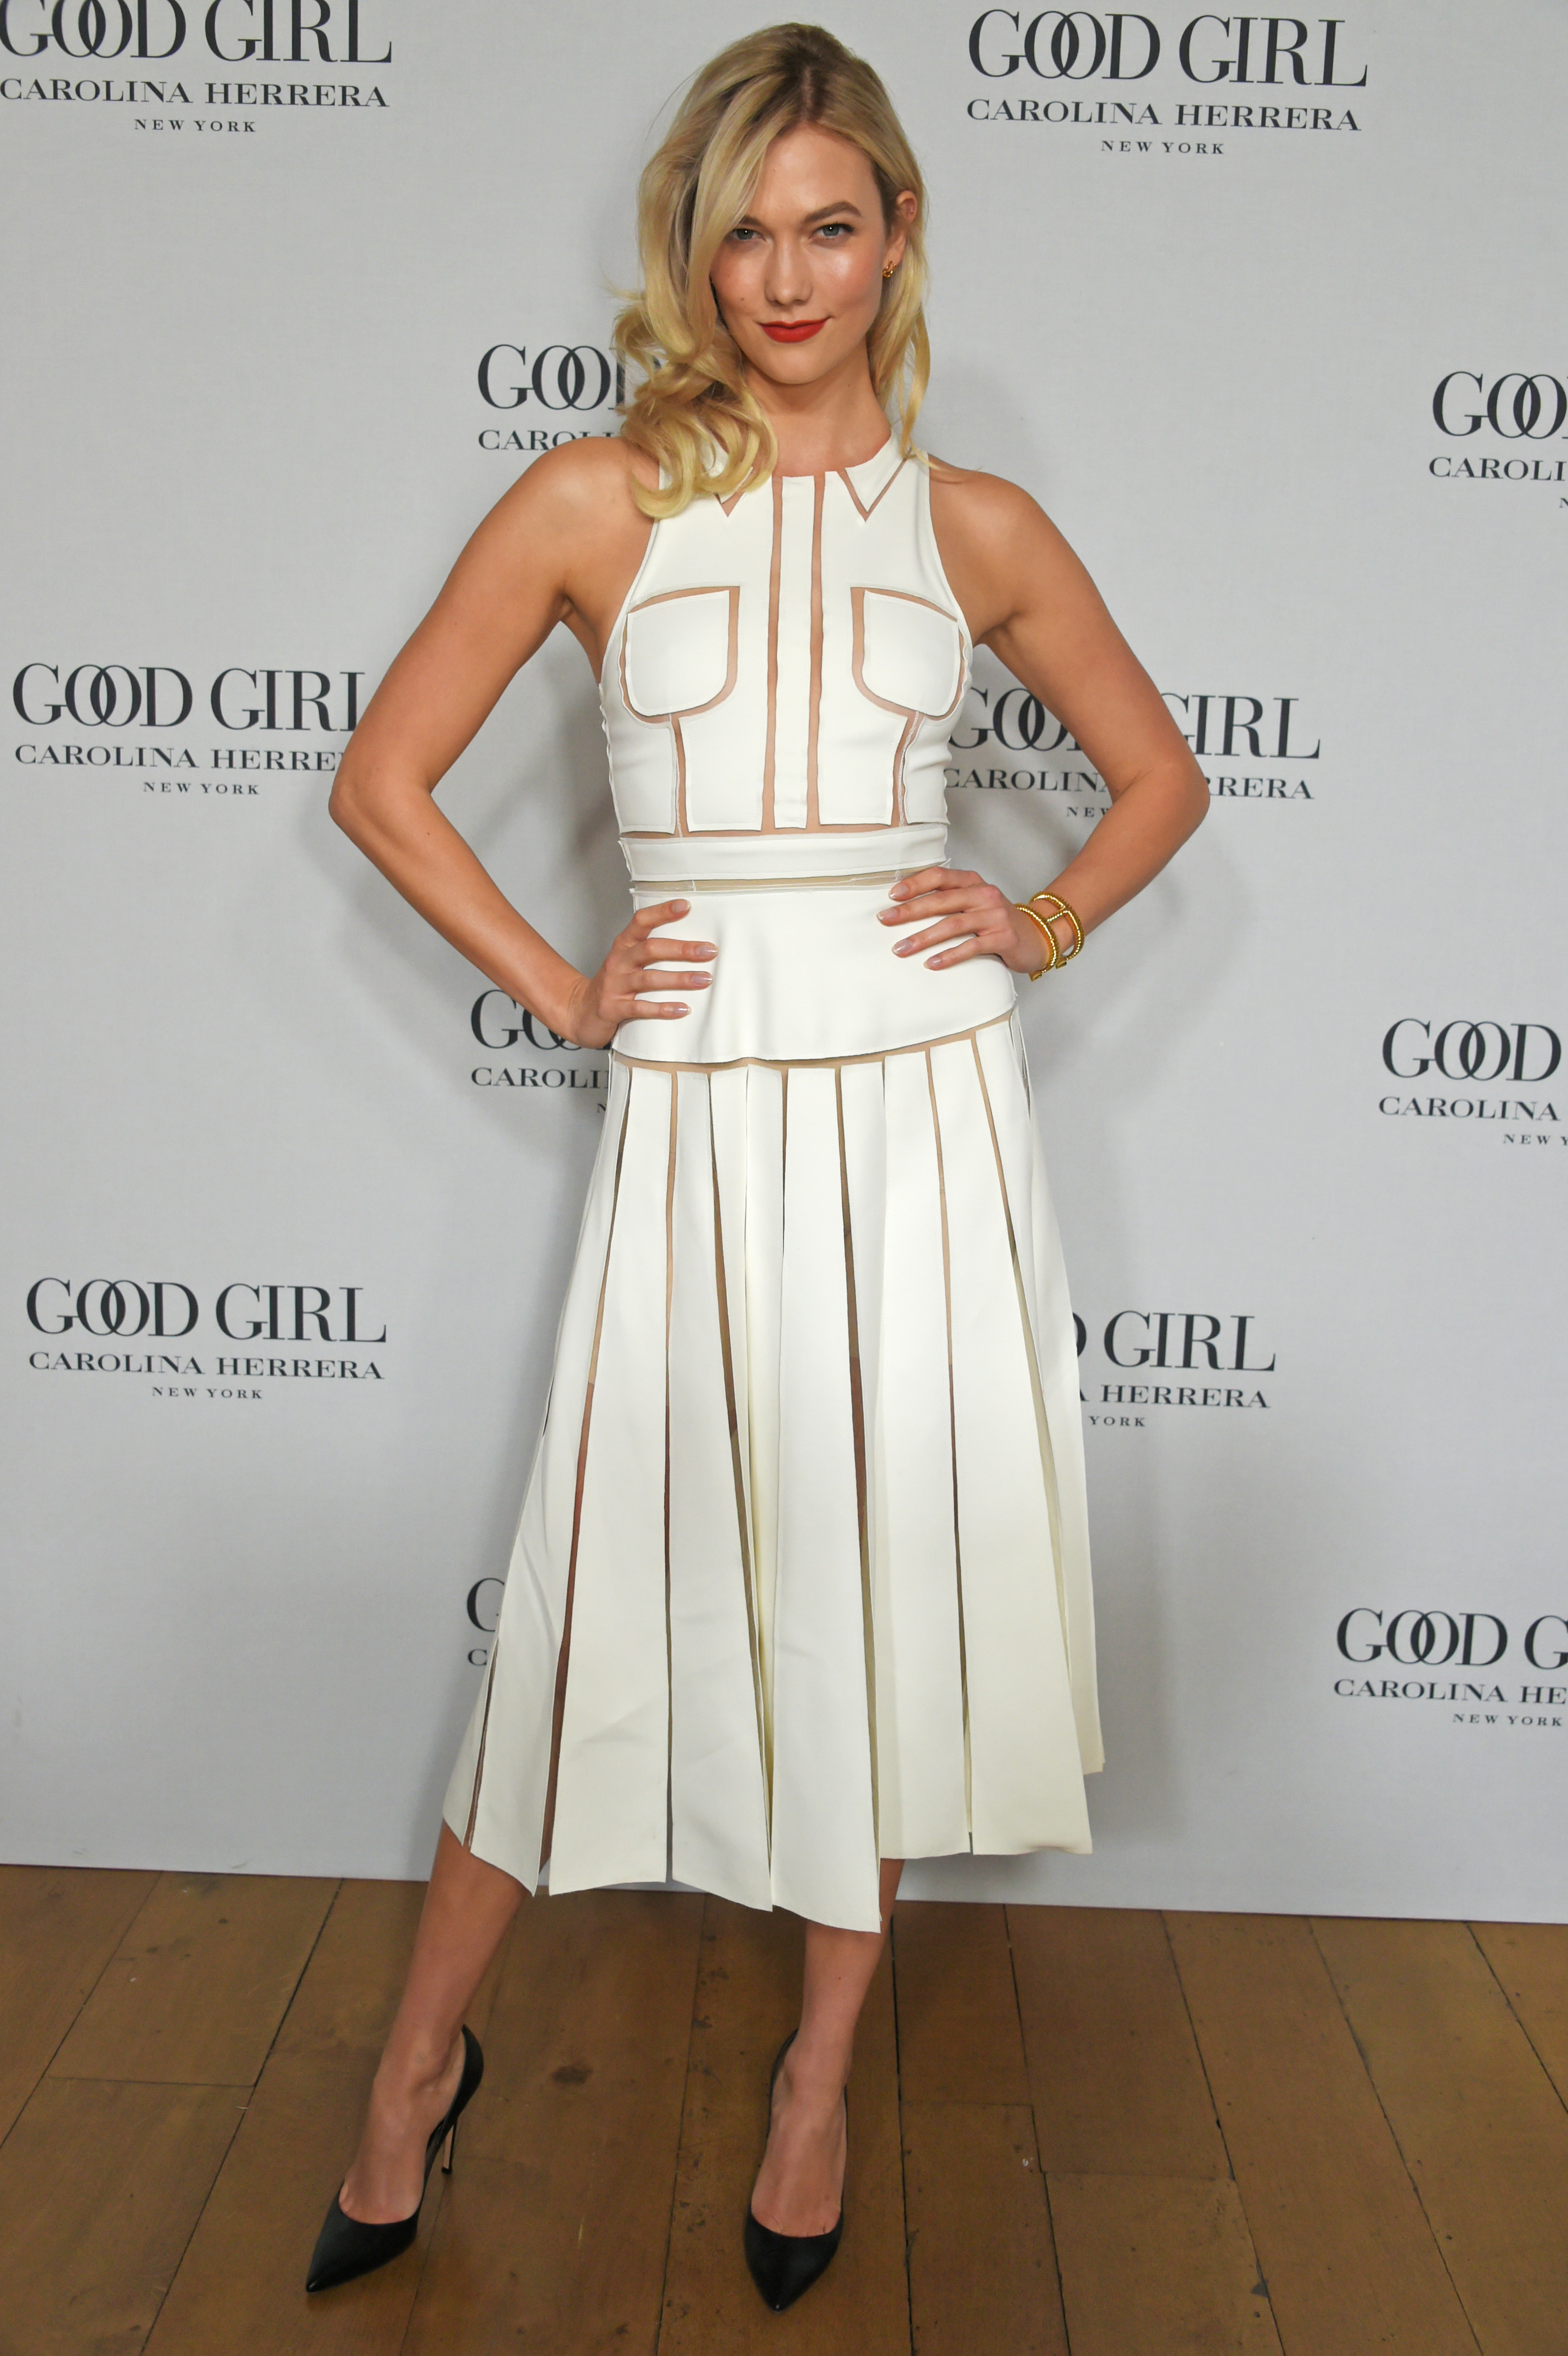 "Carolina Herrera Launches New Fragrance ""Good Girl"" With Karlie Kloss In London"